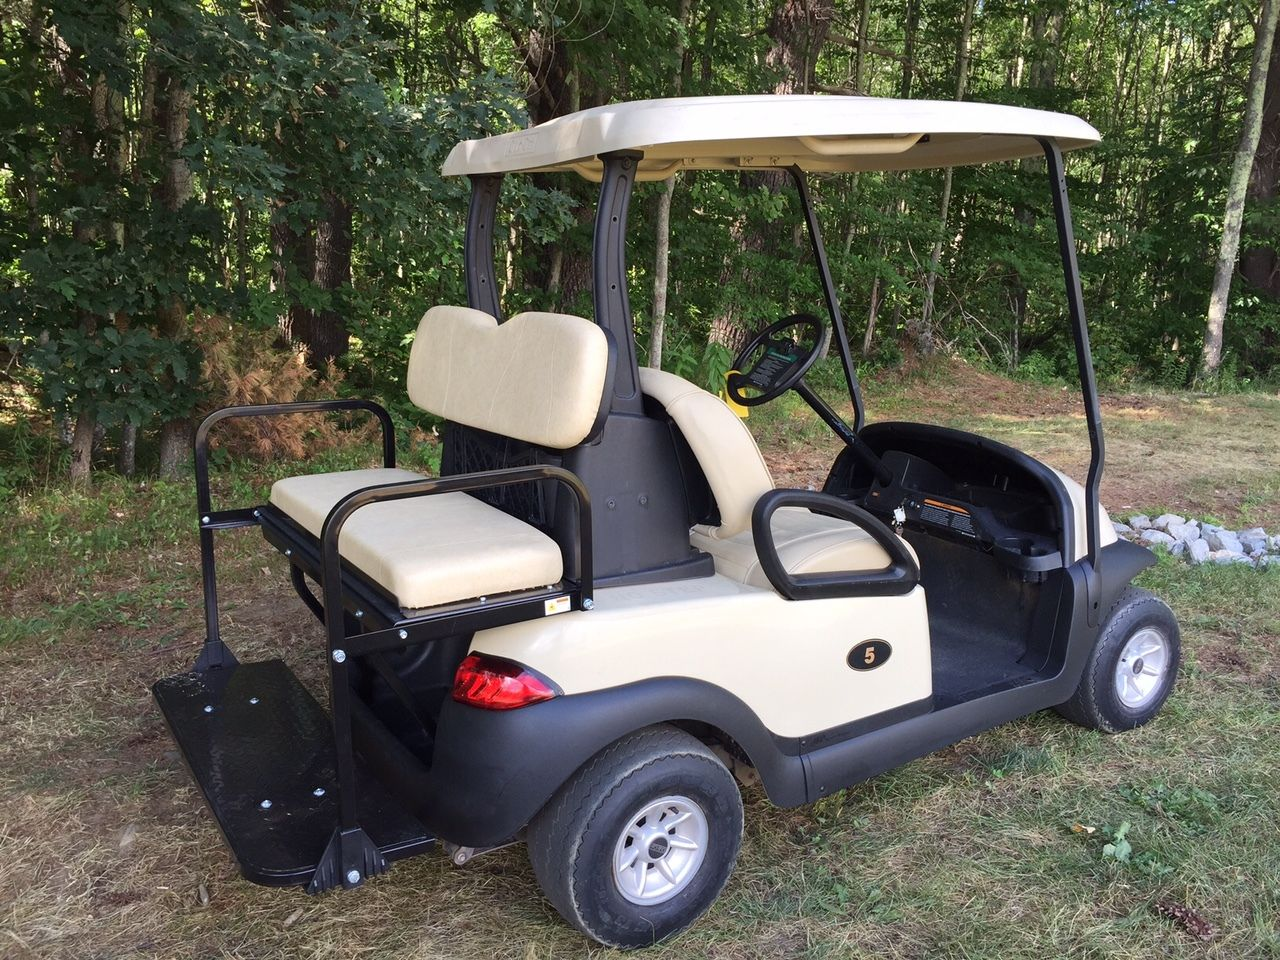 2015 Yamaha Concierge Ptv Fuel Injected Golf Cart in addition Super Atv Full Windshield Yamaha Viking likewise Sportster High likewise Used Golf Cars additionally monly Replaced Golf Cart Parts. on yamaha golf cart seats